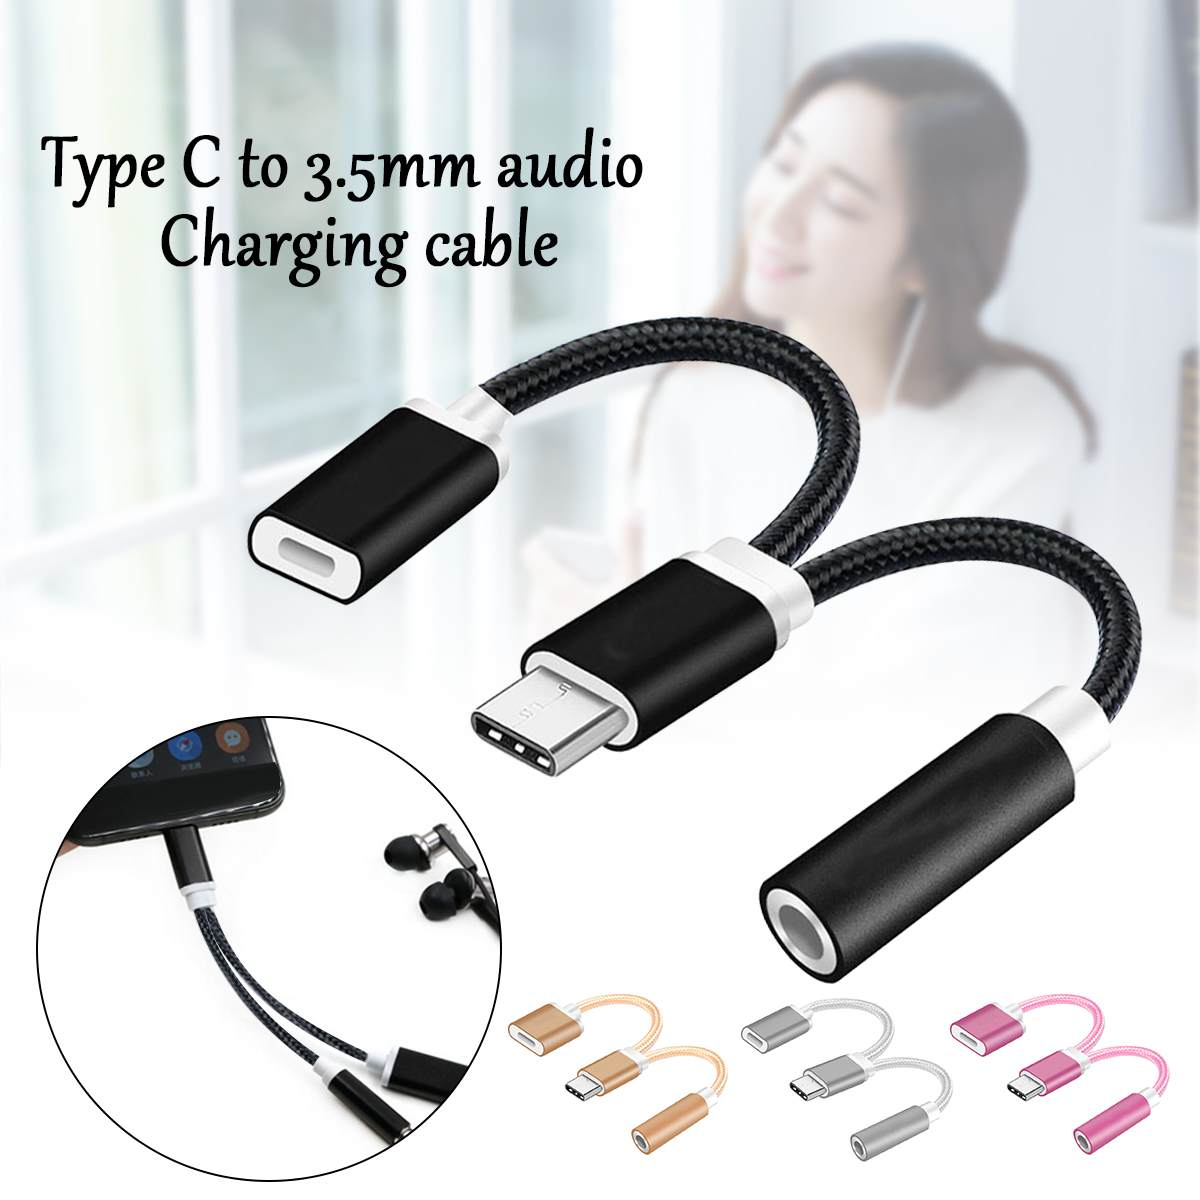 Bakeey 2 In 1 Type C To 3.5mm Audio Jack Adapter For Phone Headphone Charger Cable Headset Converter For Huawei Mate20 Xiaomi 8